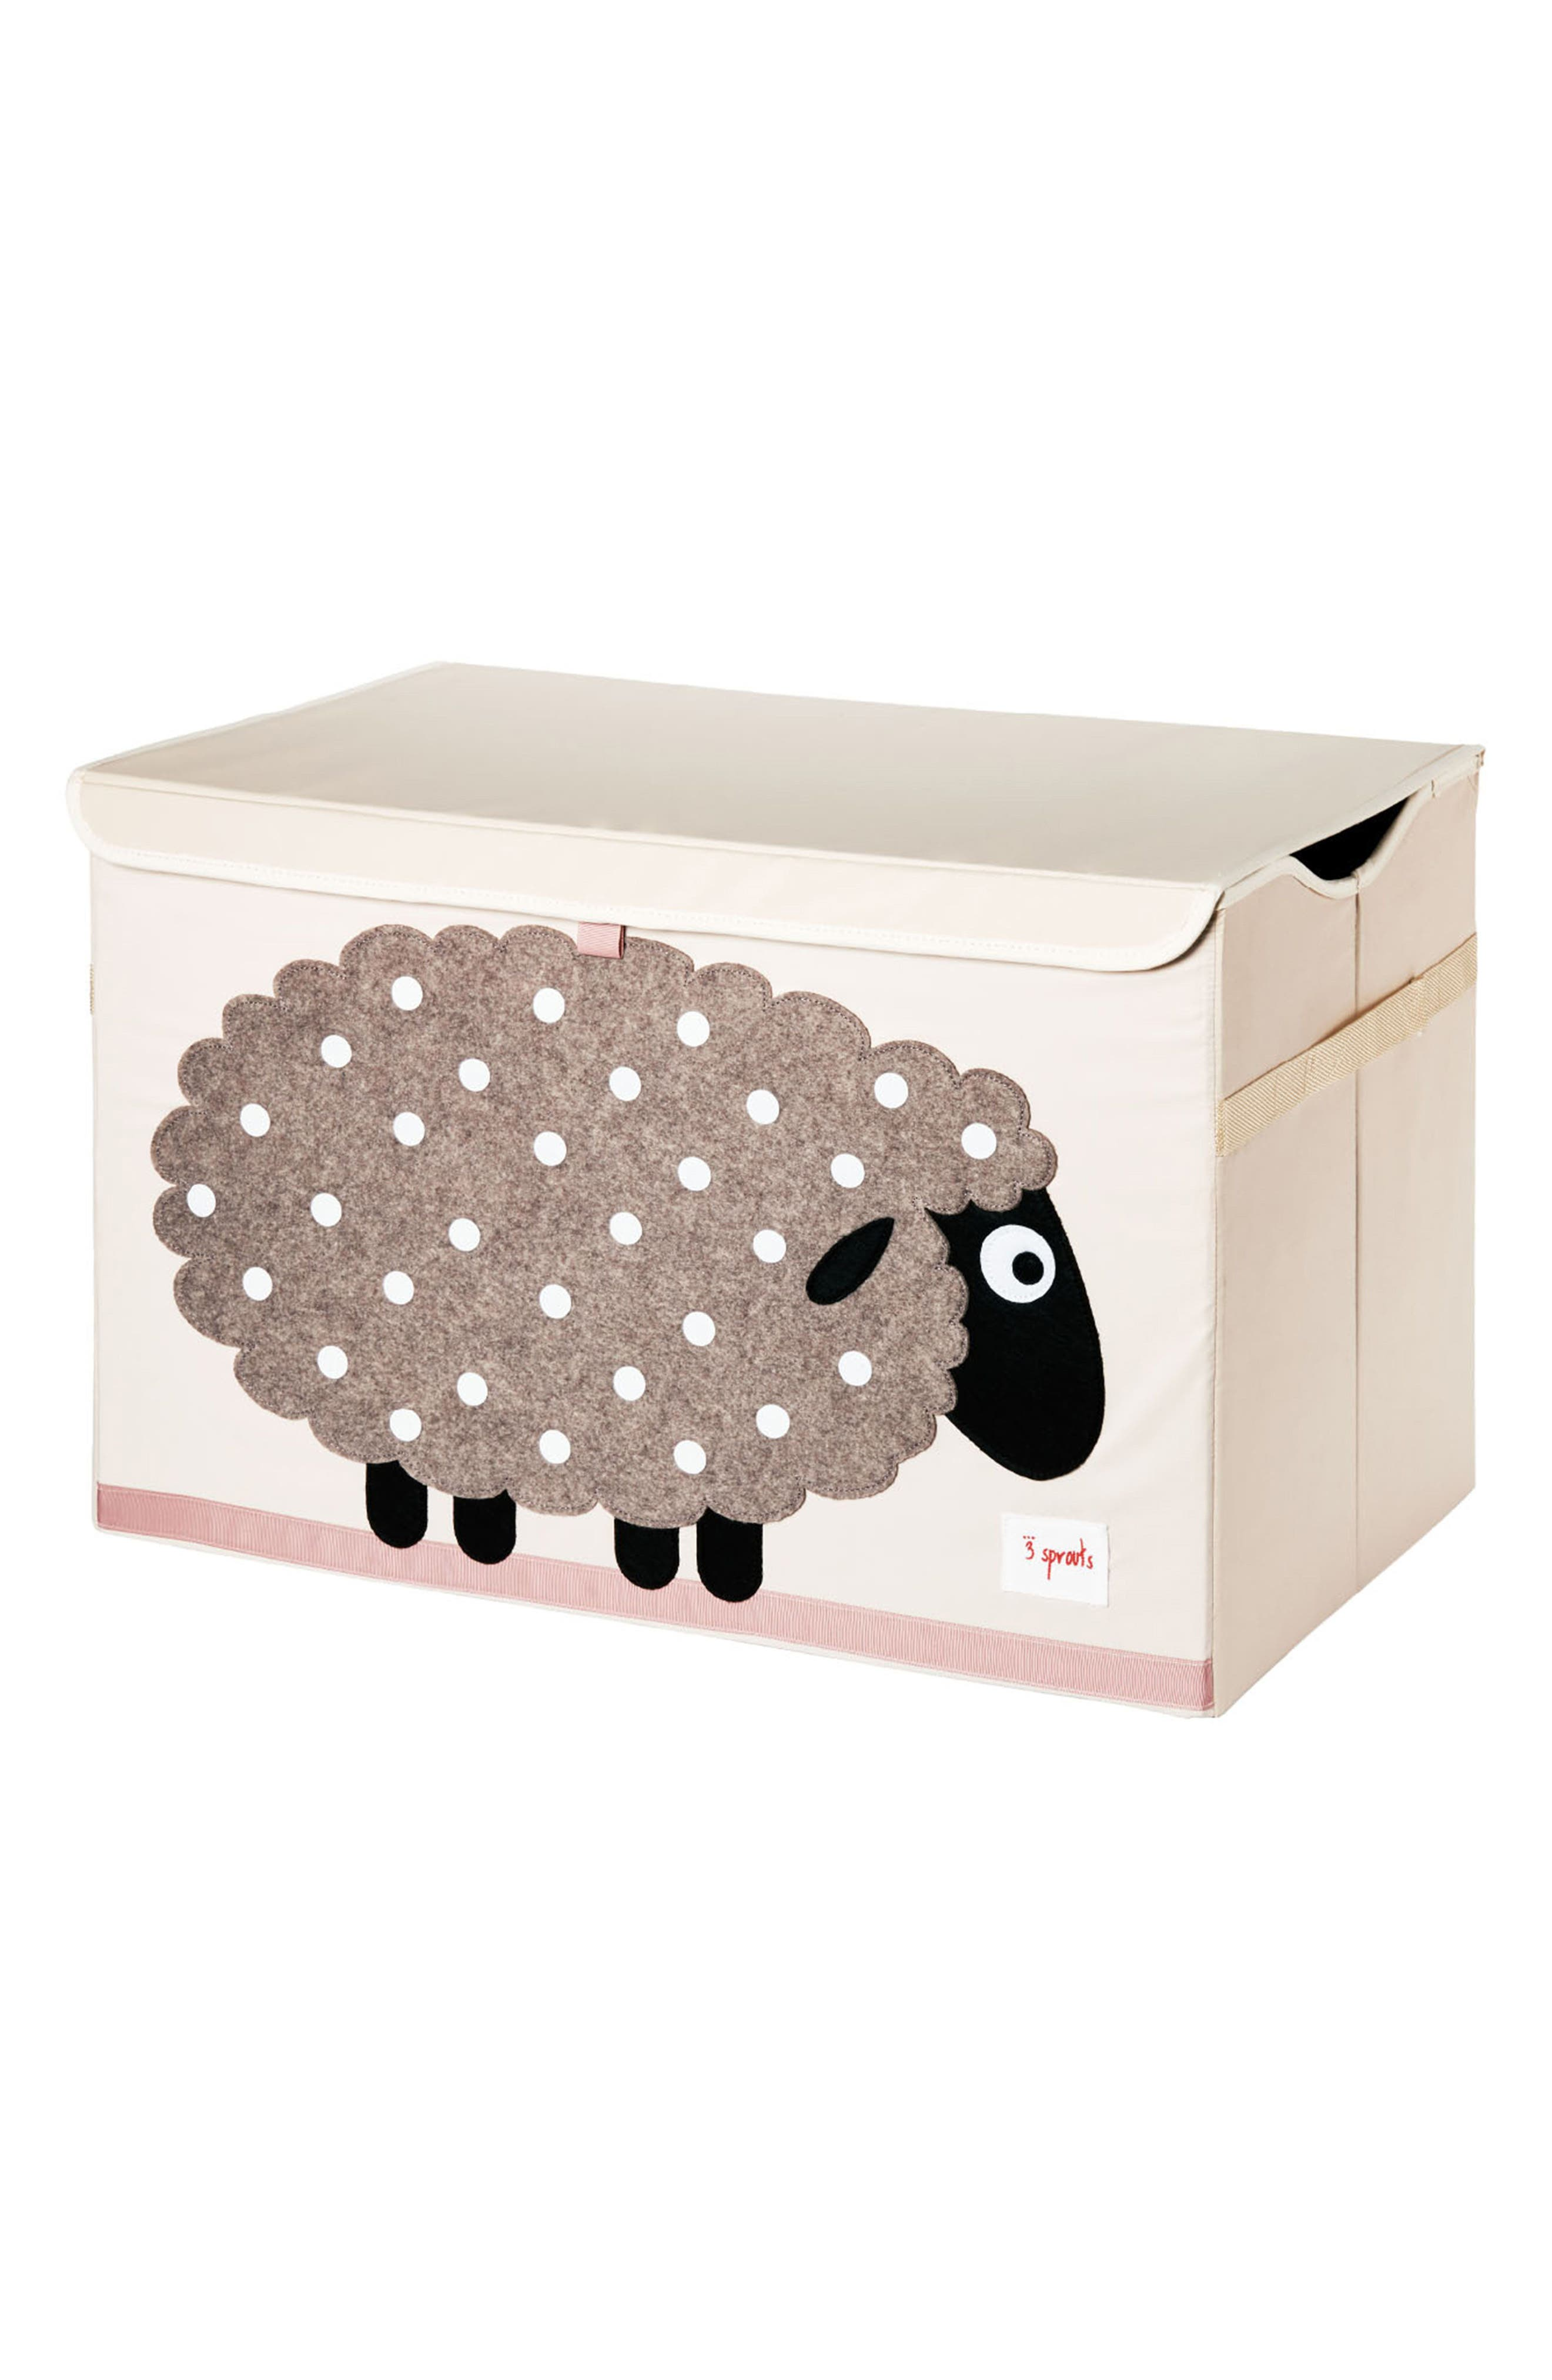 Sheep Toy Chest,                             Main thumbnail 1, color,                             250